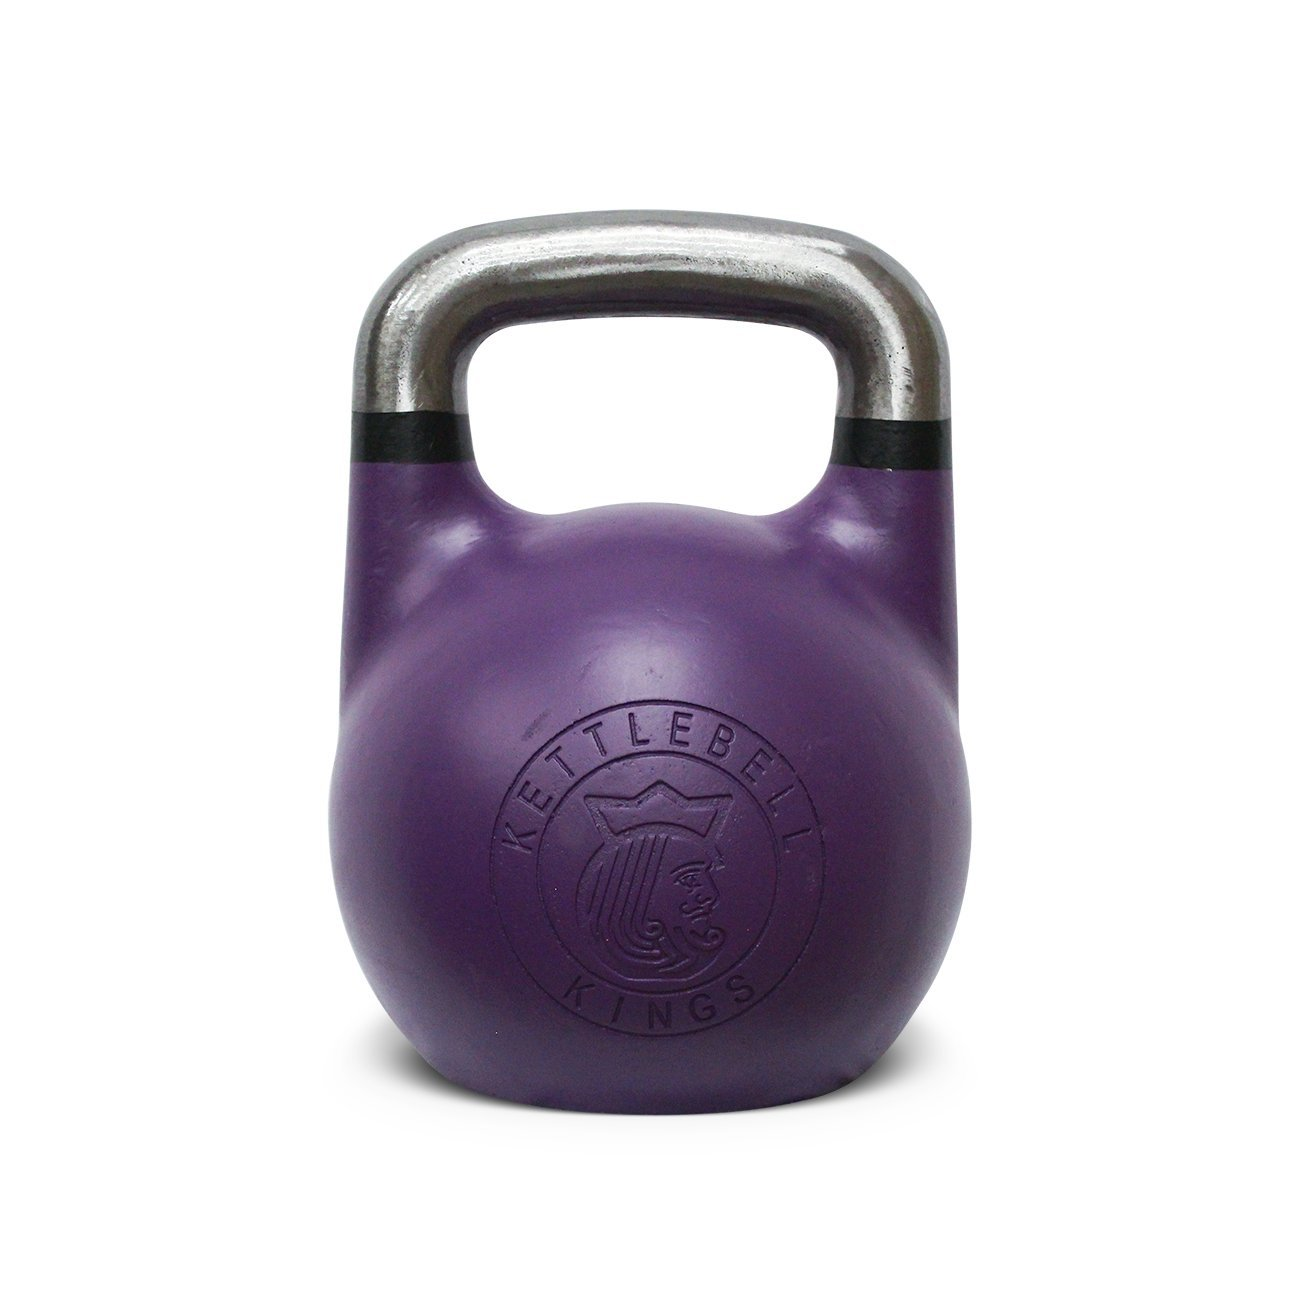 Kettlebell Kings | Competition Kettlebell Weights | Kettlebell Sets for Women & Men | Designed for Comfort in High Repetition Workouts | Superior Balance for Better Workouts (48.5)